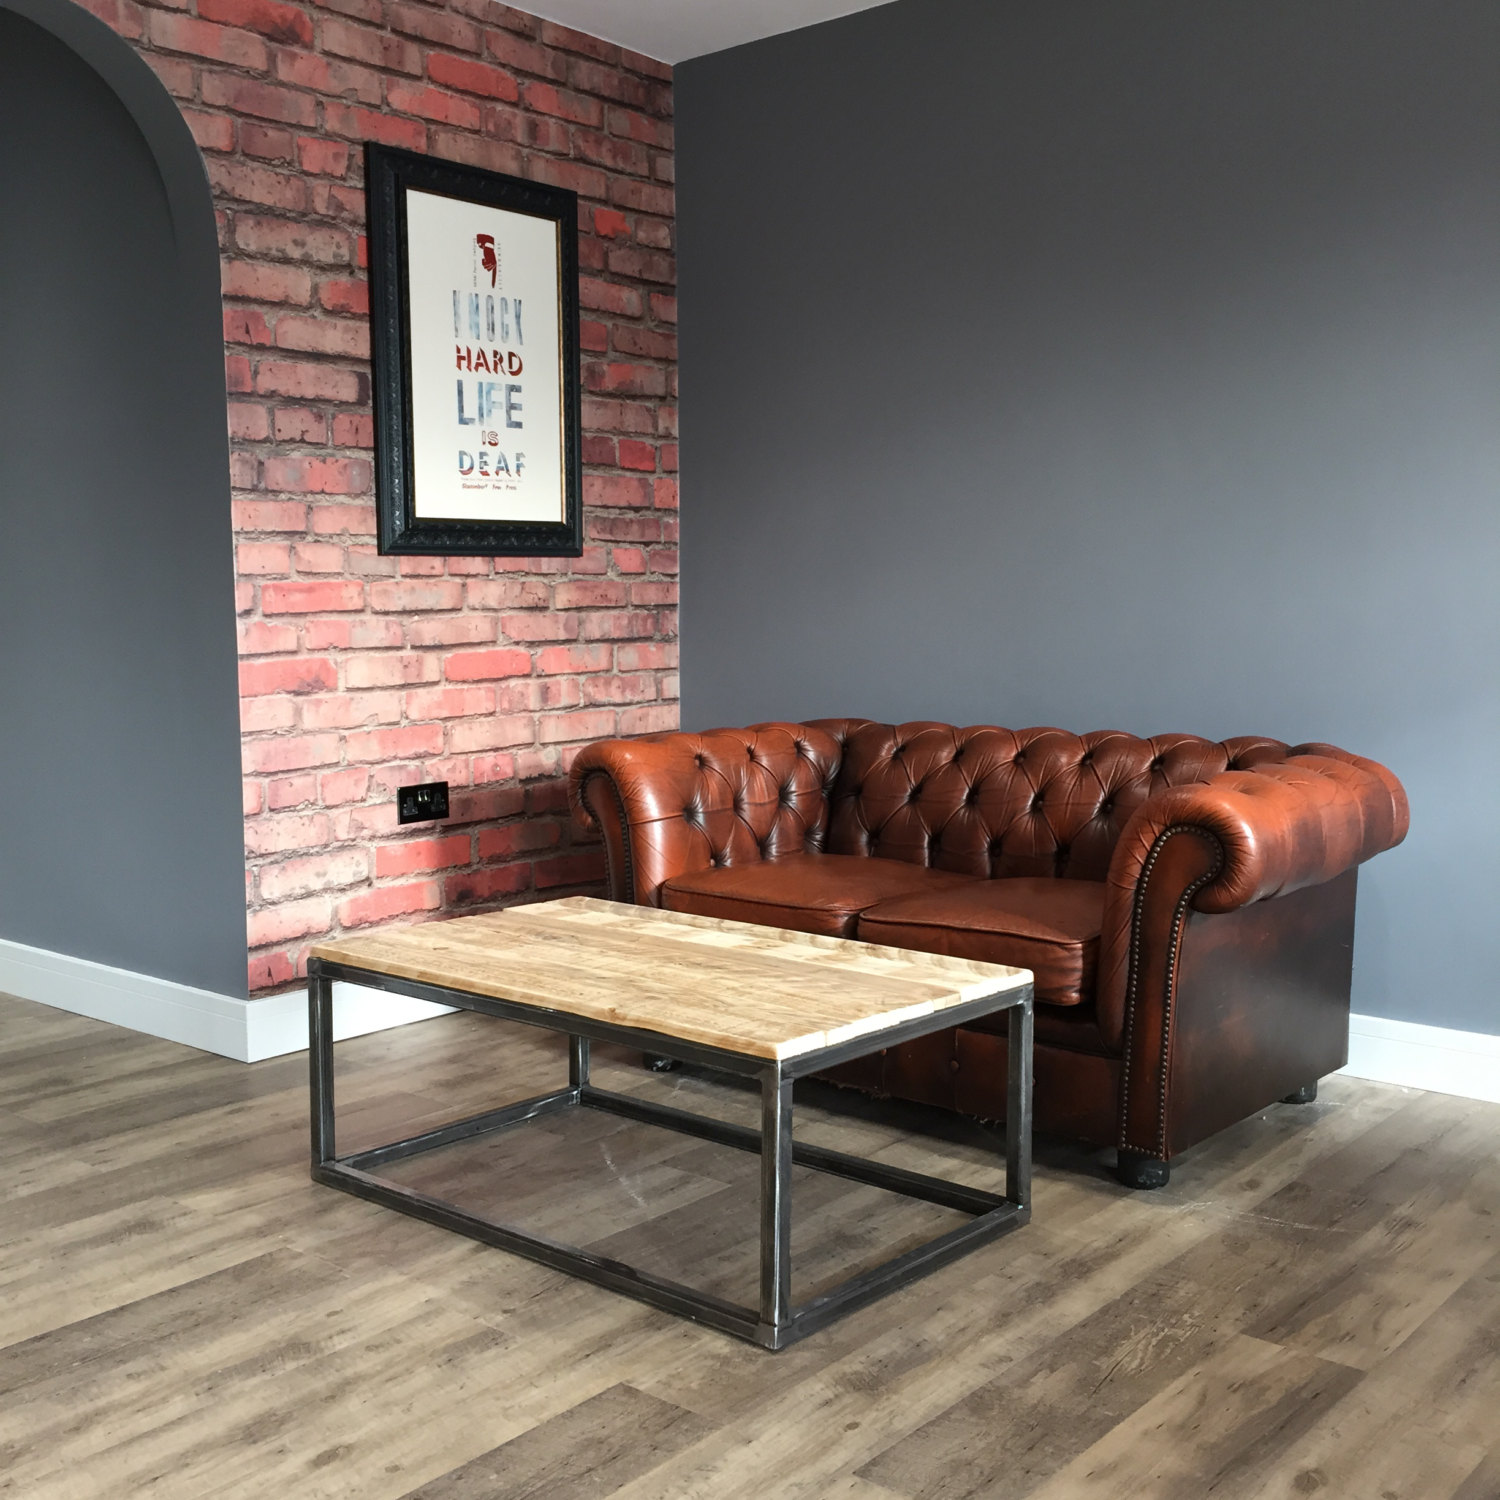 Regained pallet industrial coffee table